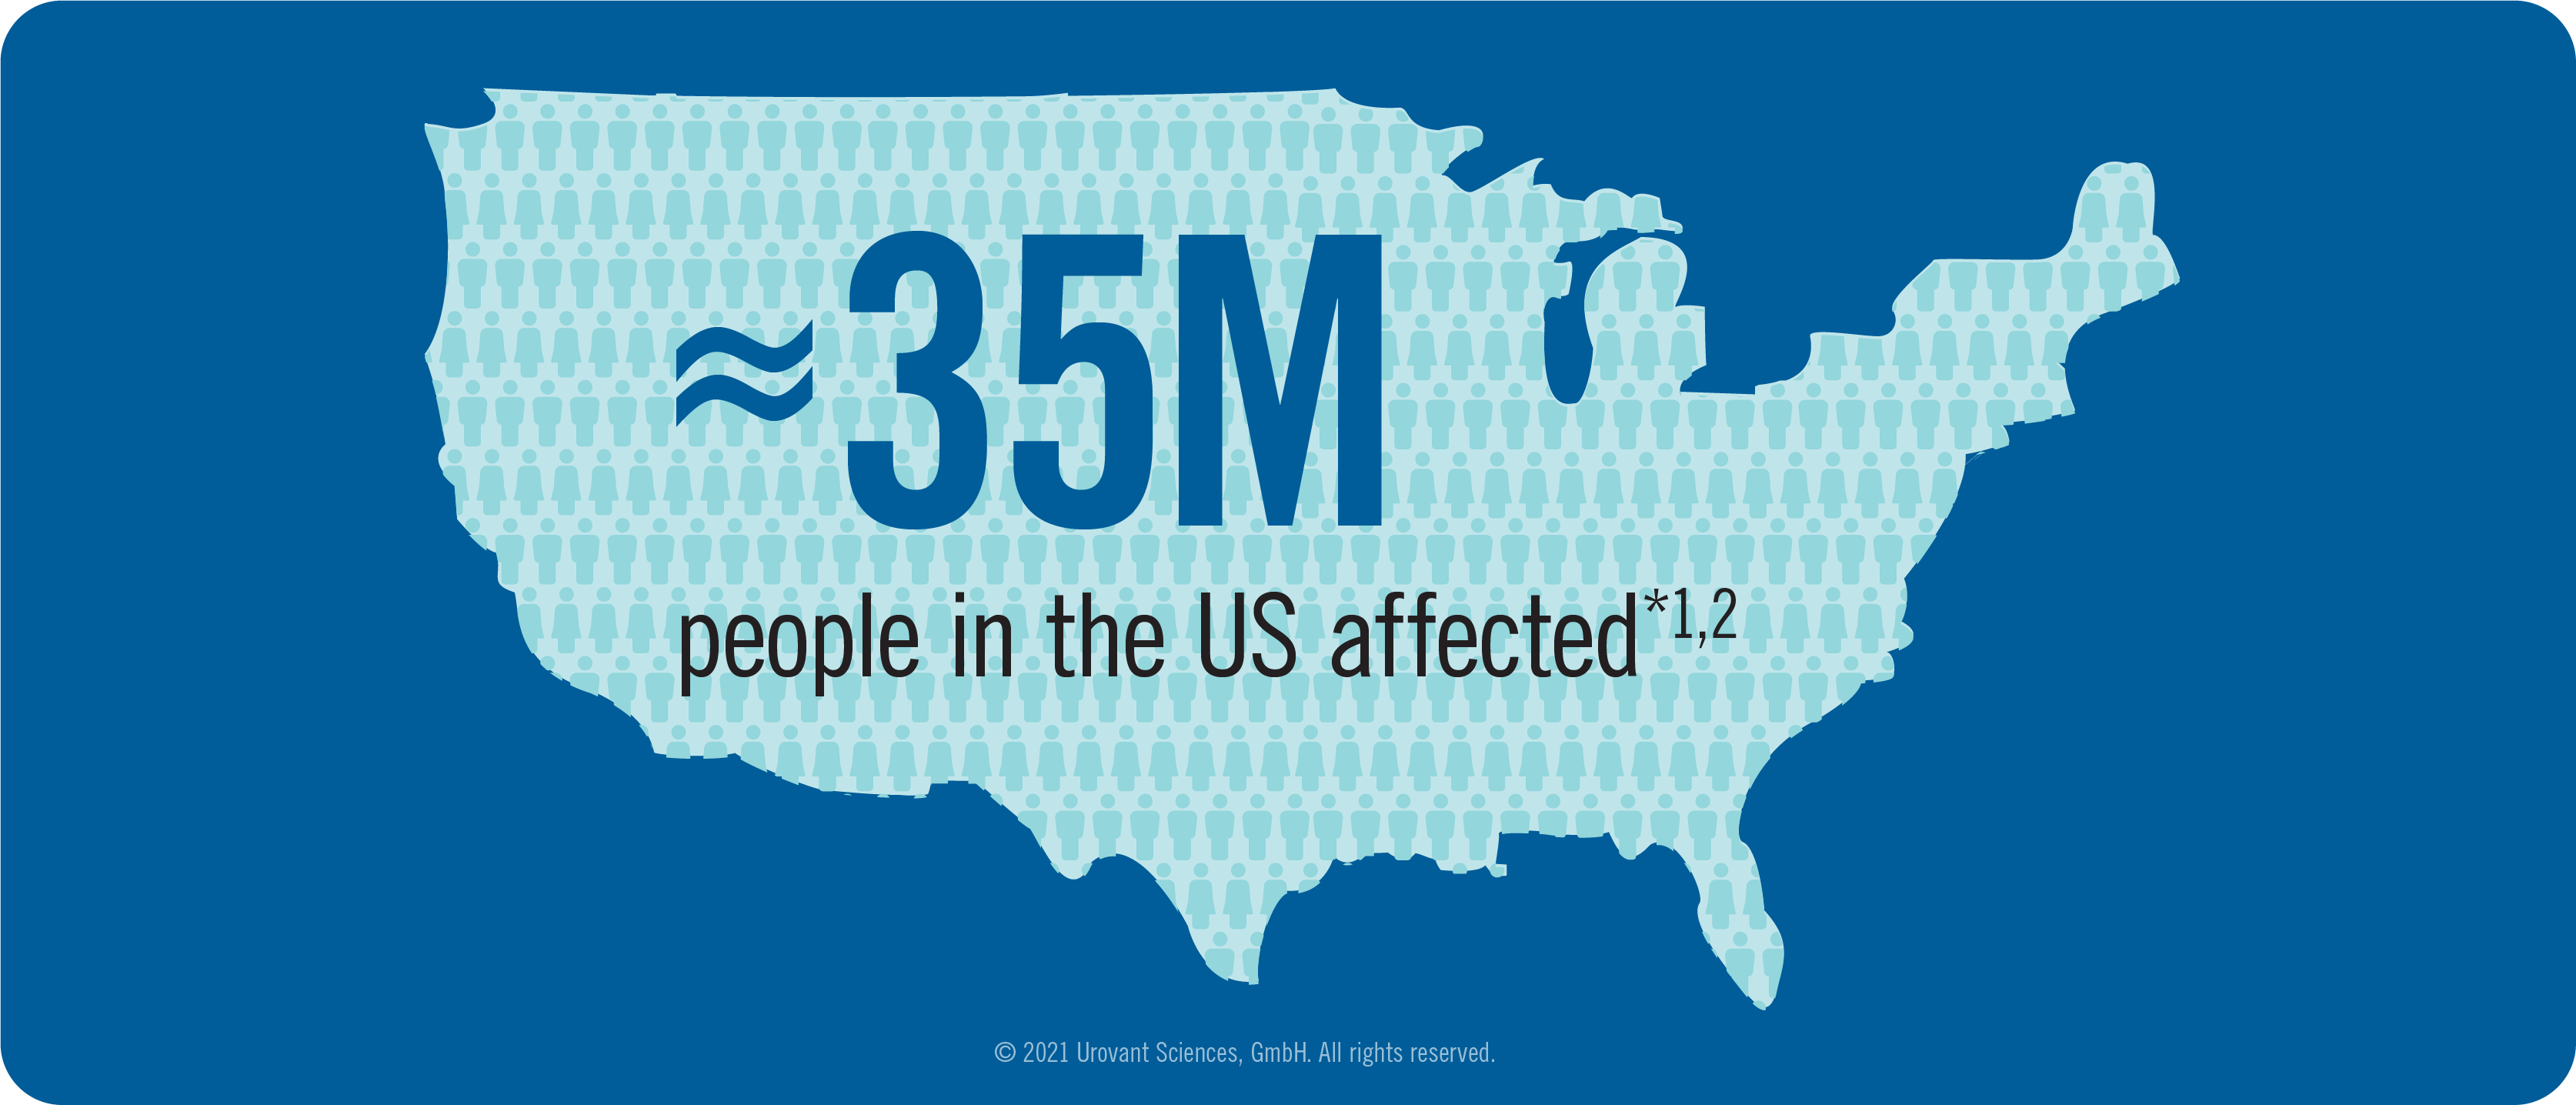 Infographic of U.S. map of 35 million people in US affected by overactive bladder